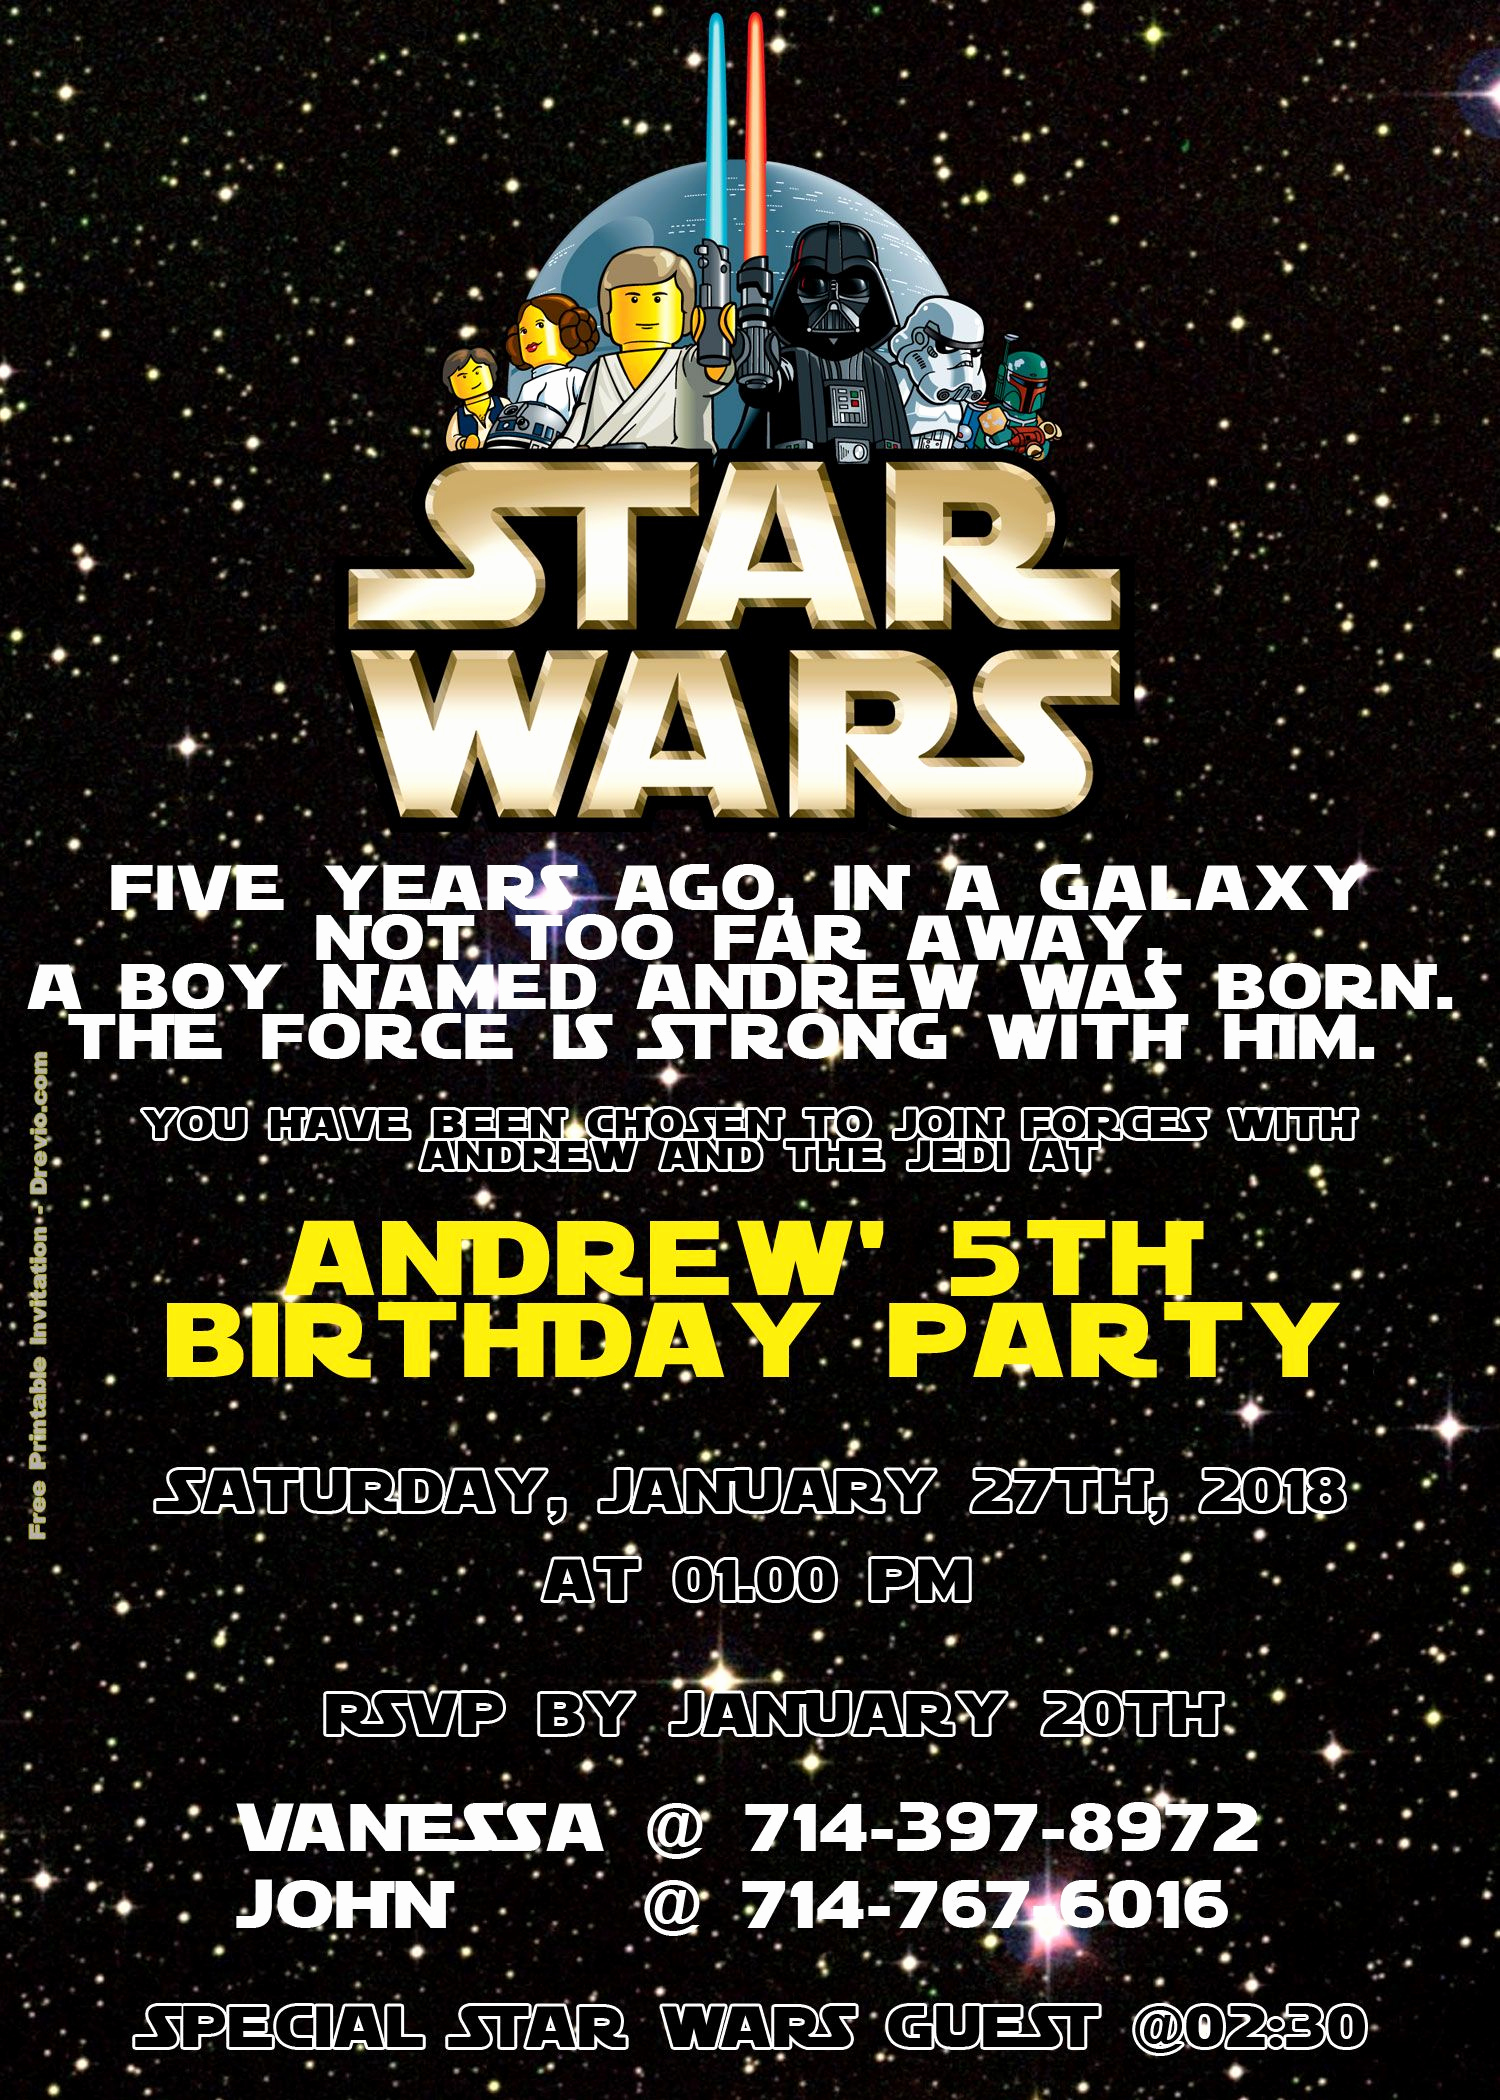 Star Wars Invitation Templates Free Inspirational Free Lego Star Wars Birthday Invitation Psd